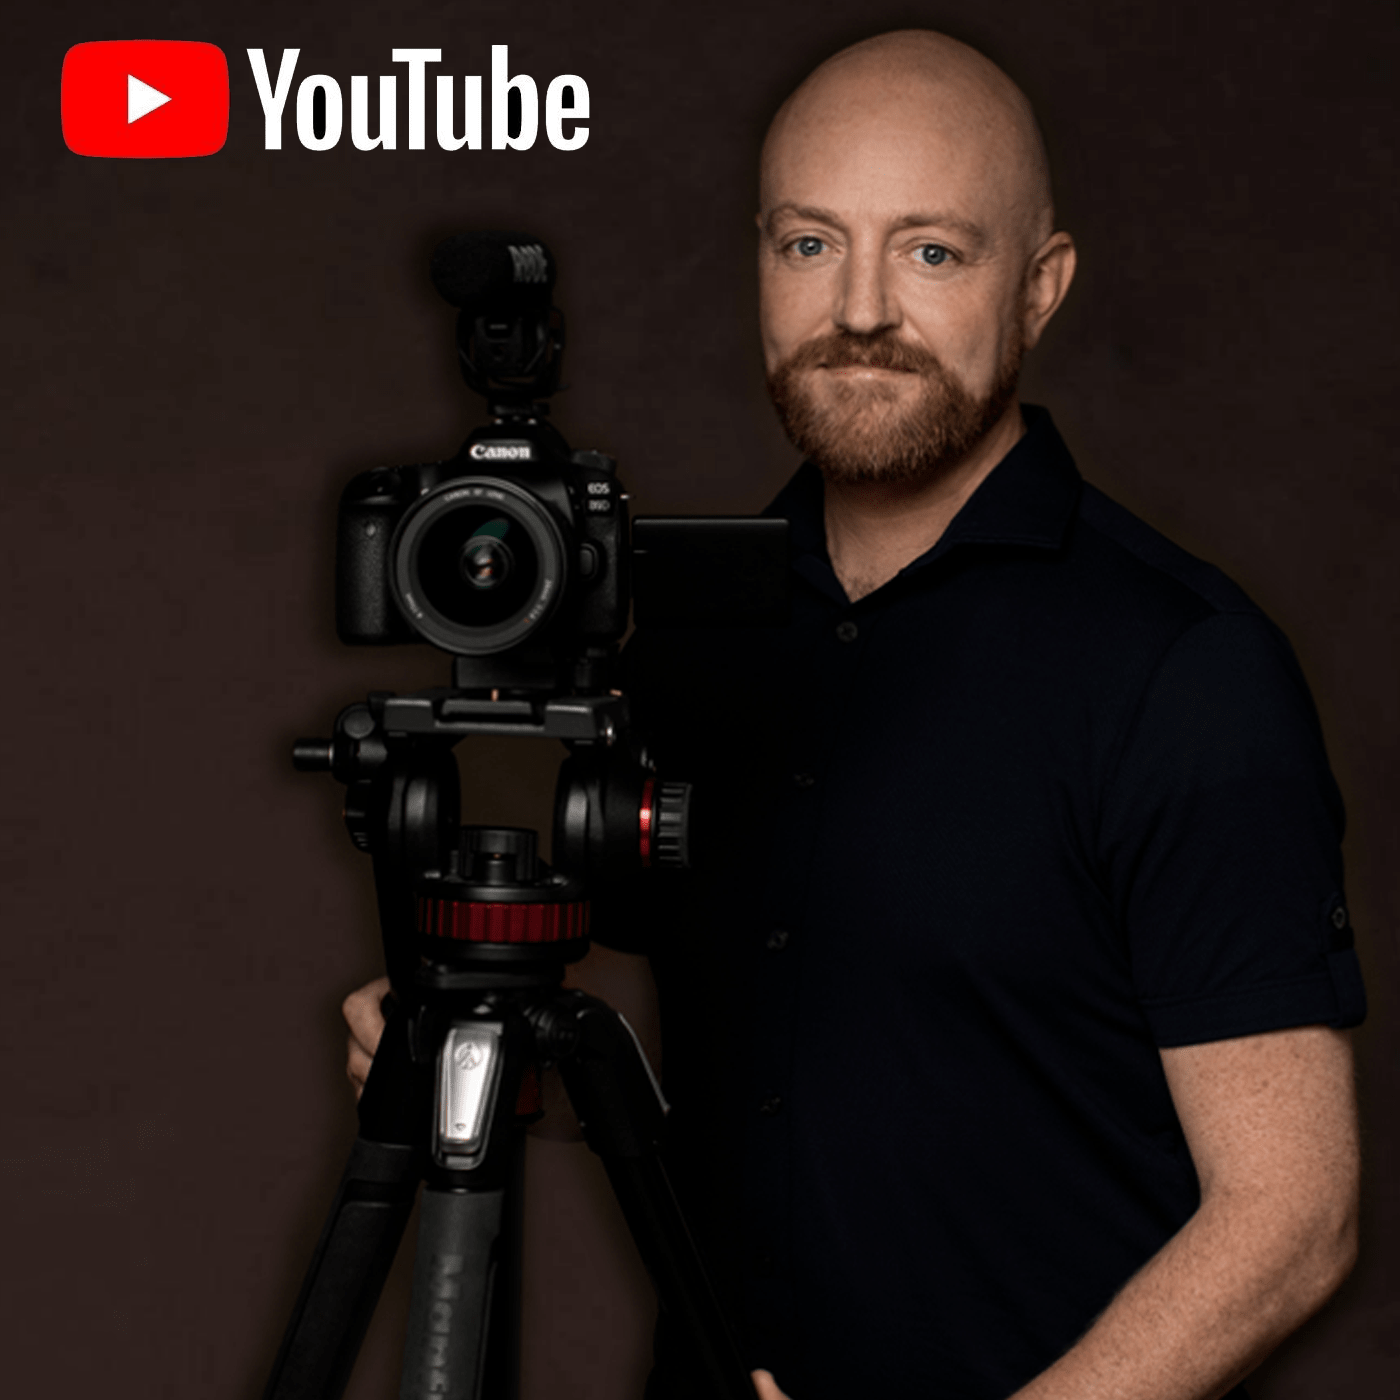 build a massive following on YouTube